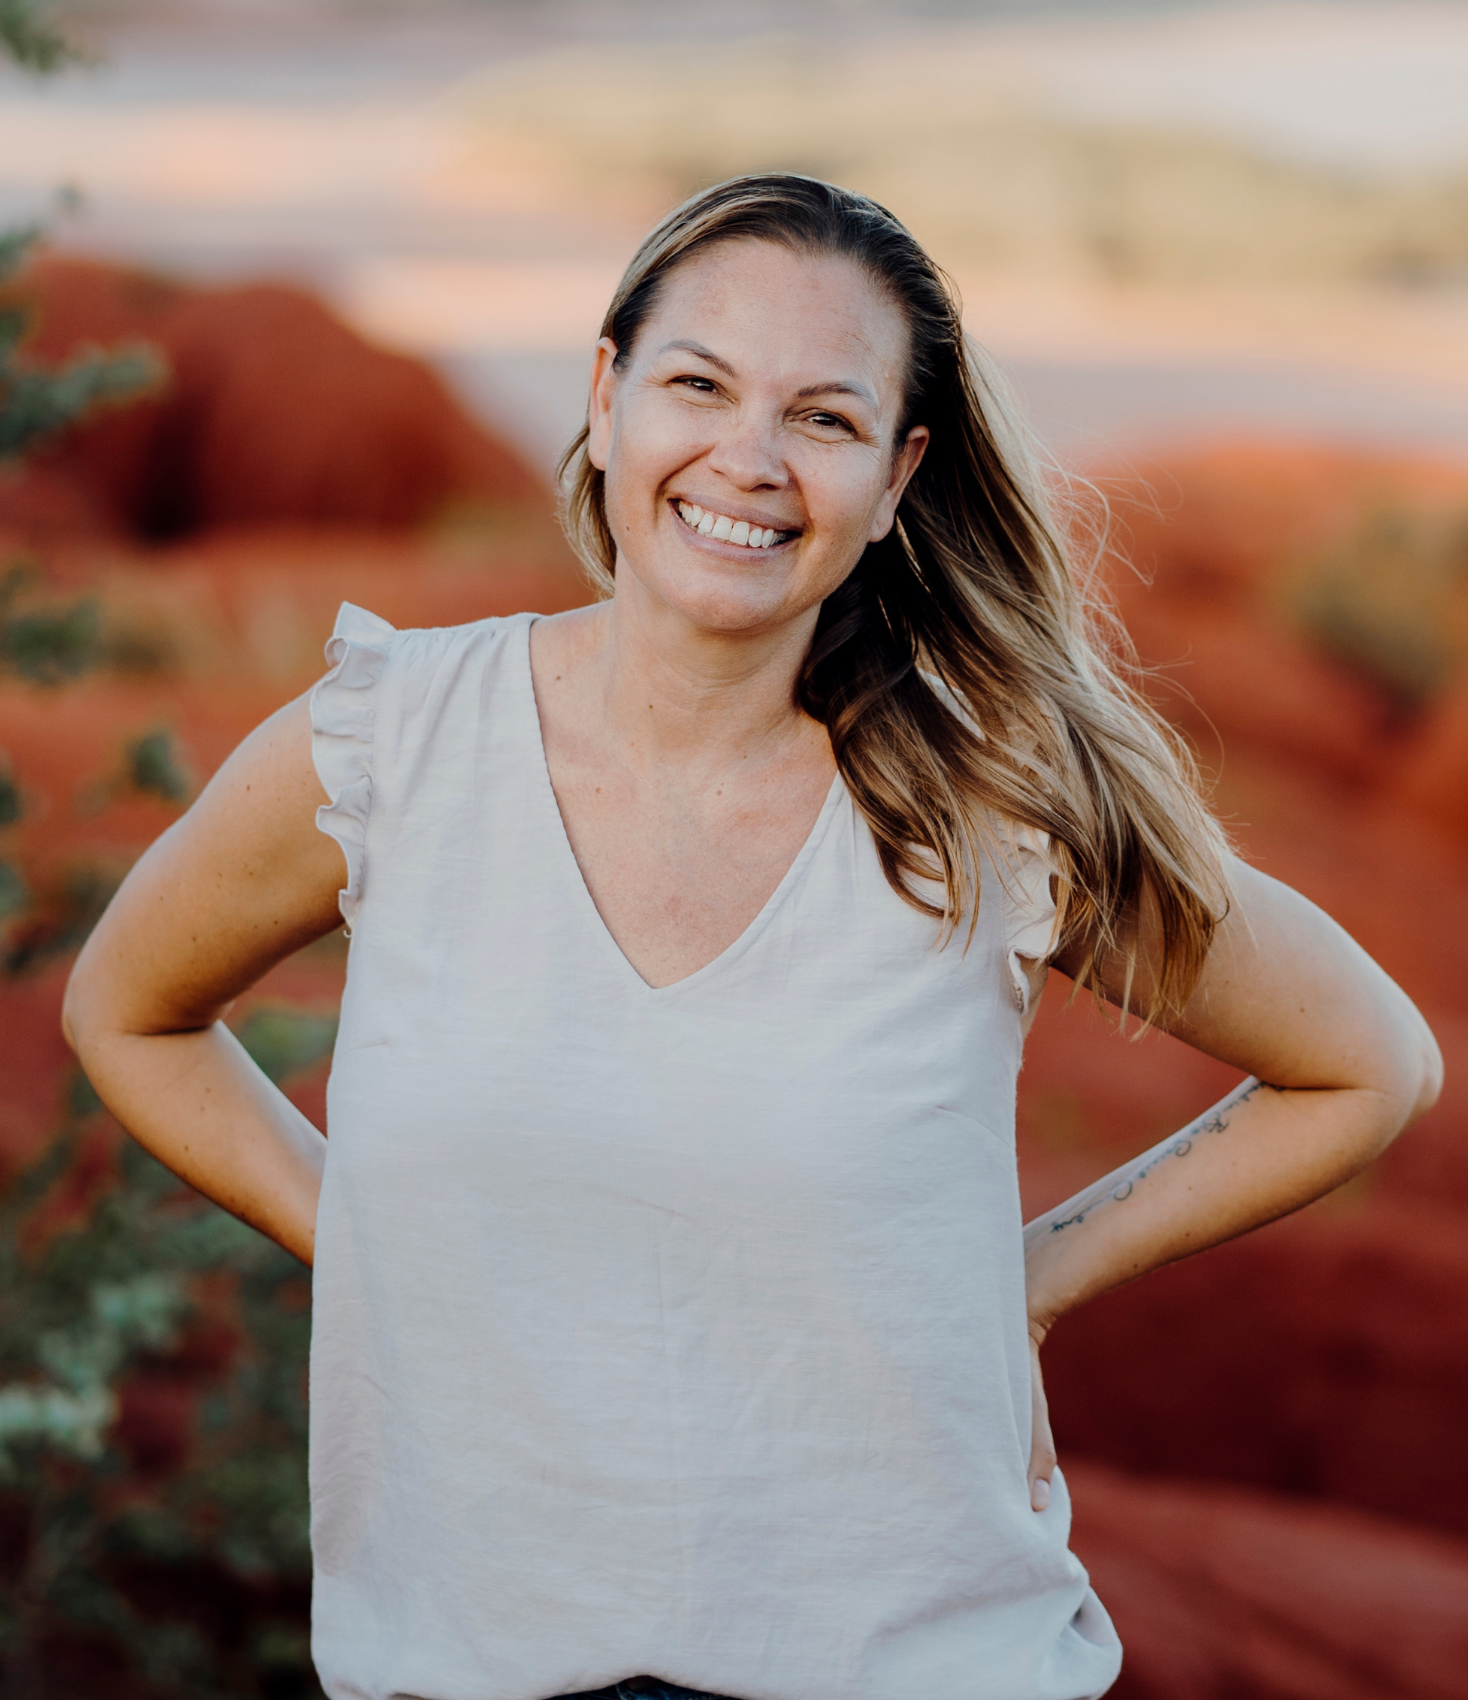 smiling woman with her hands on her hips wearing a white blouse with red rocks in the background